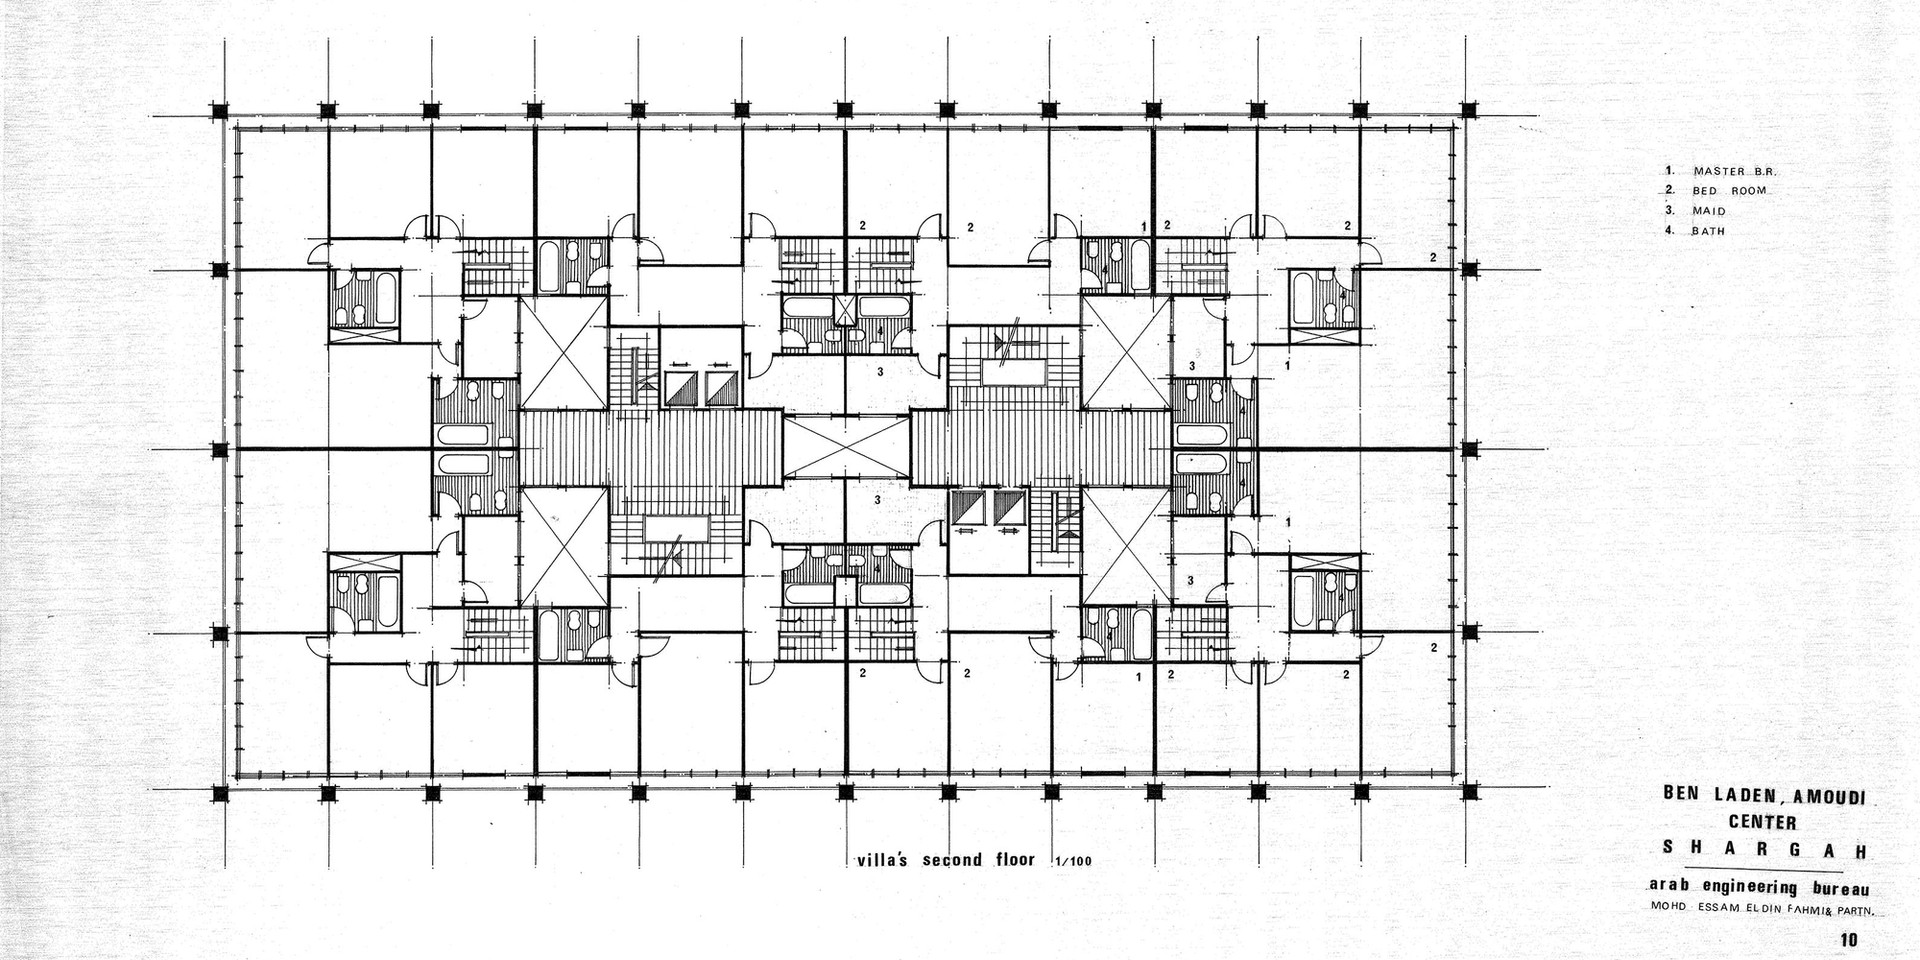 Amoudi Center Villas Second Floor Plan